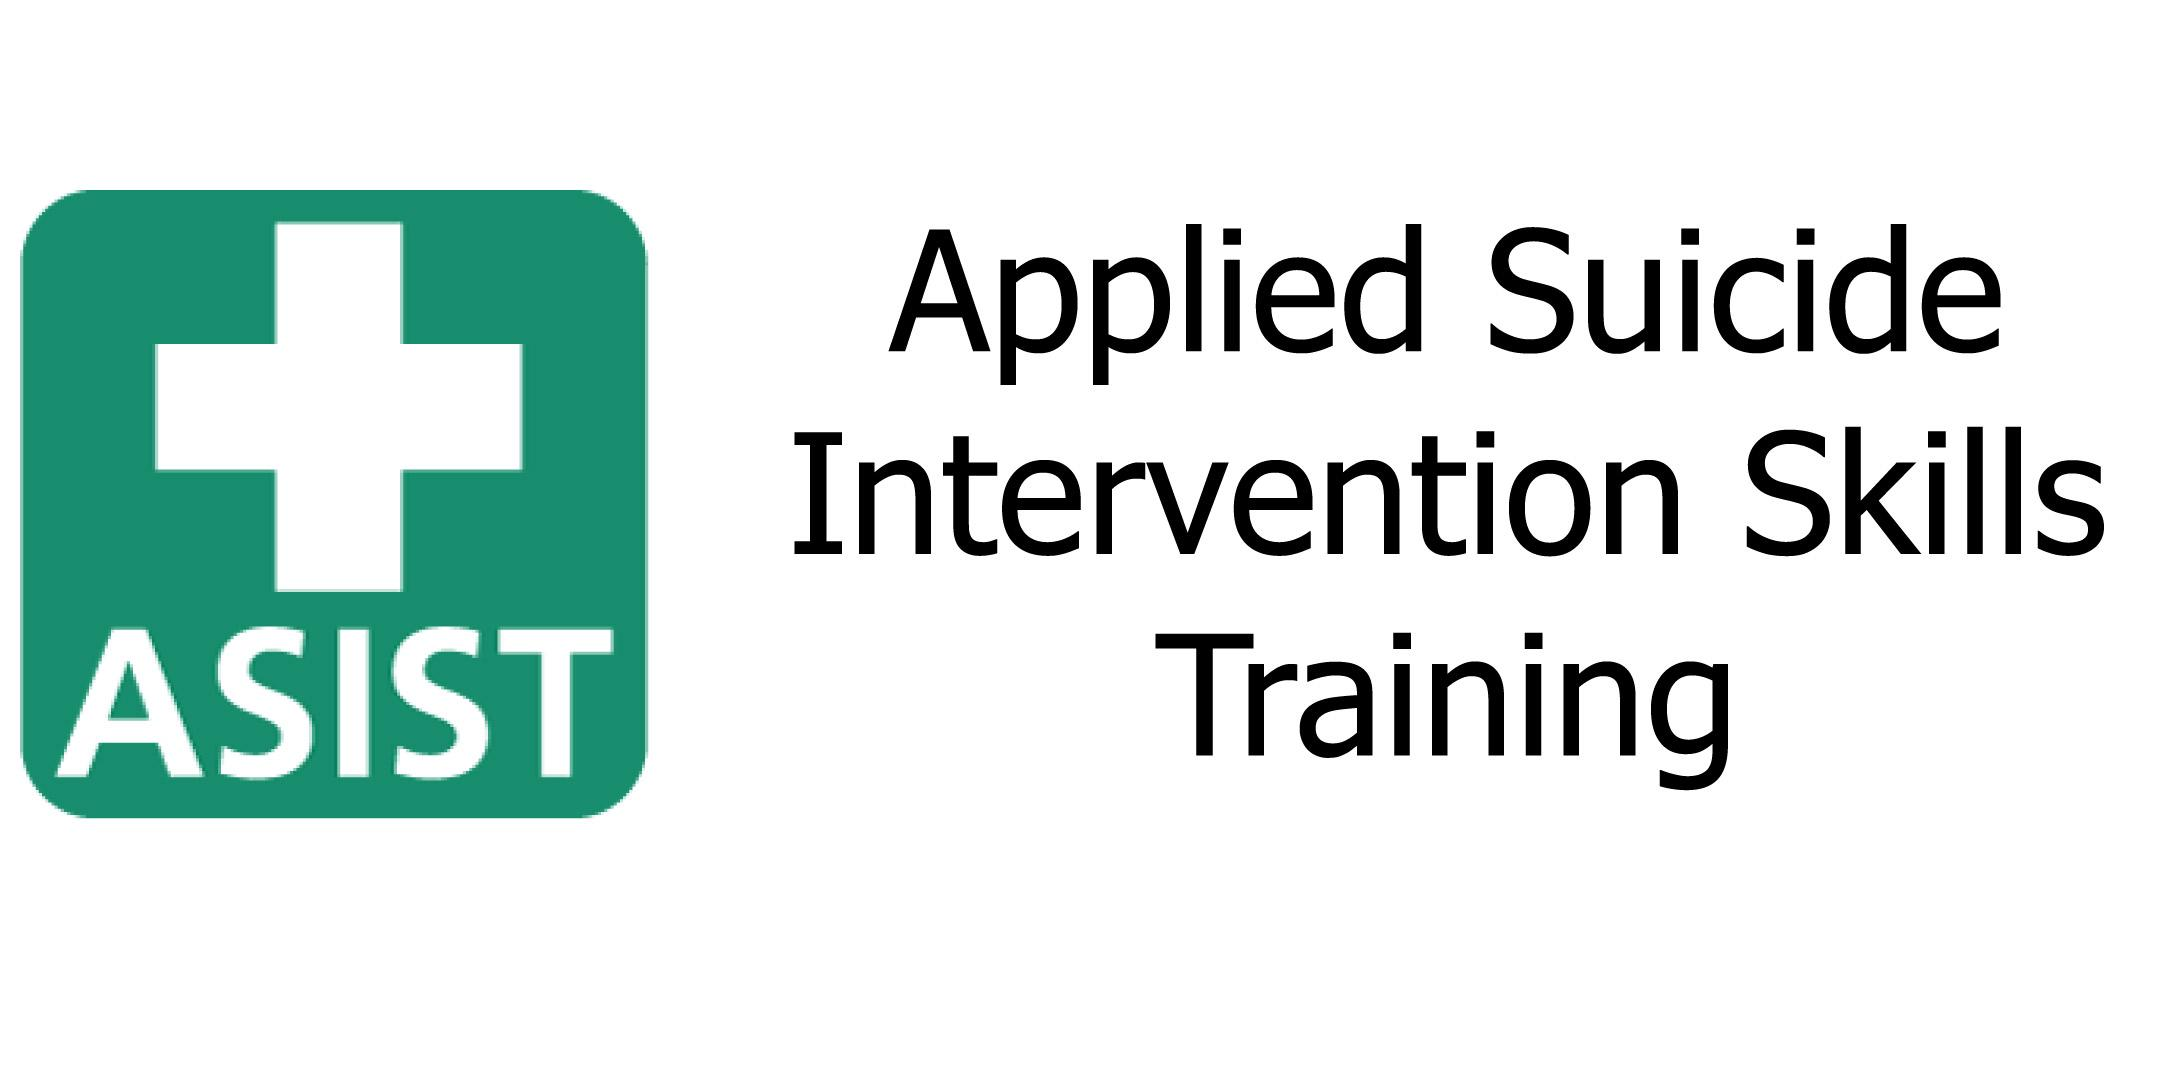 Certification for Applied Suicide Intervention Skills Training (ASIST)